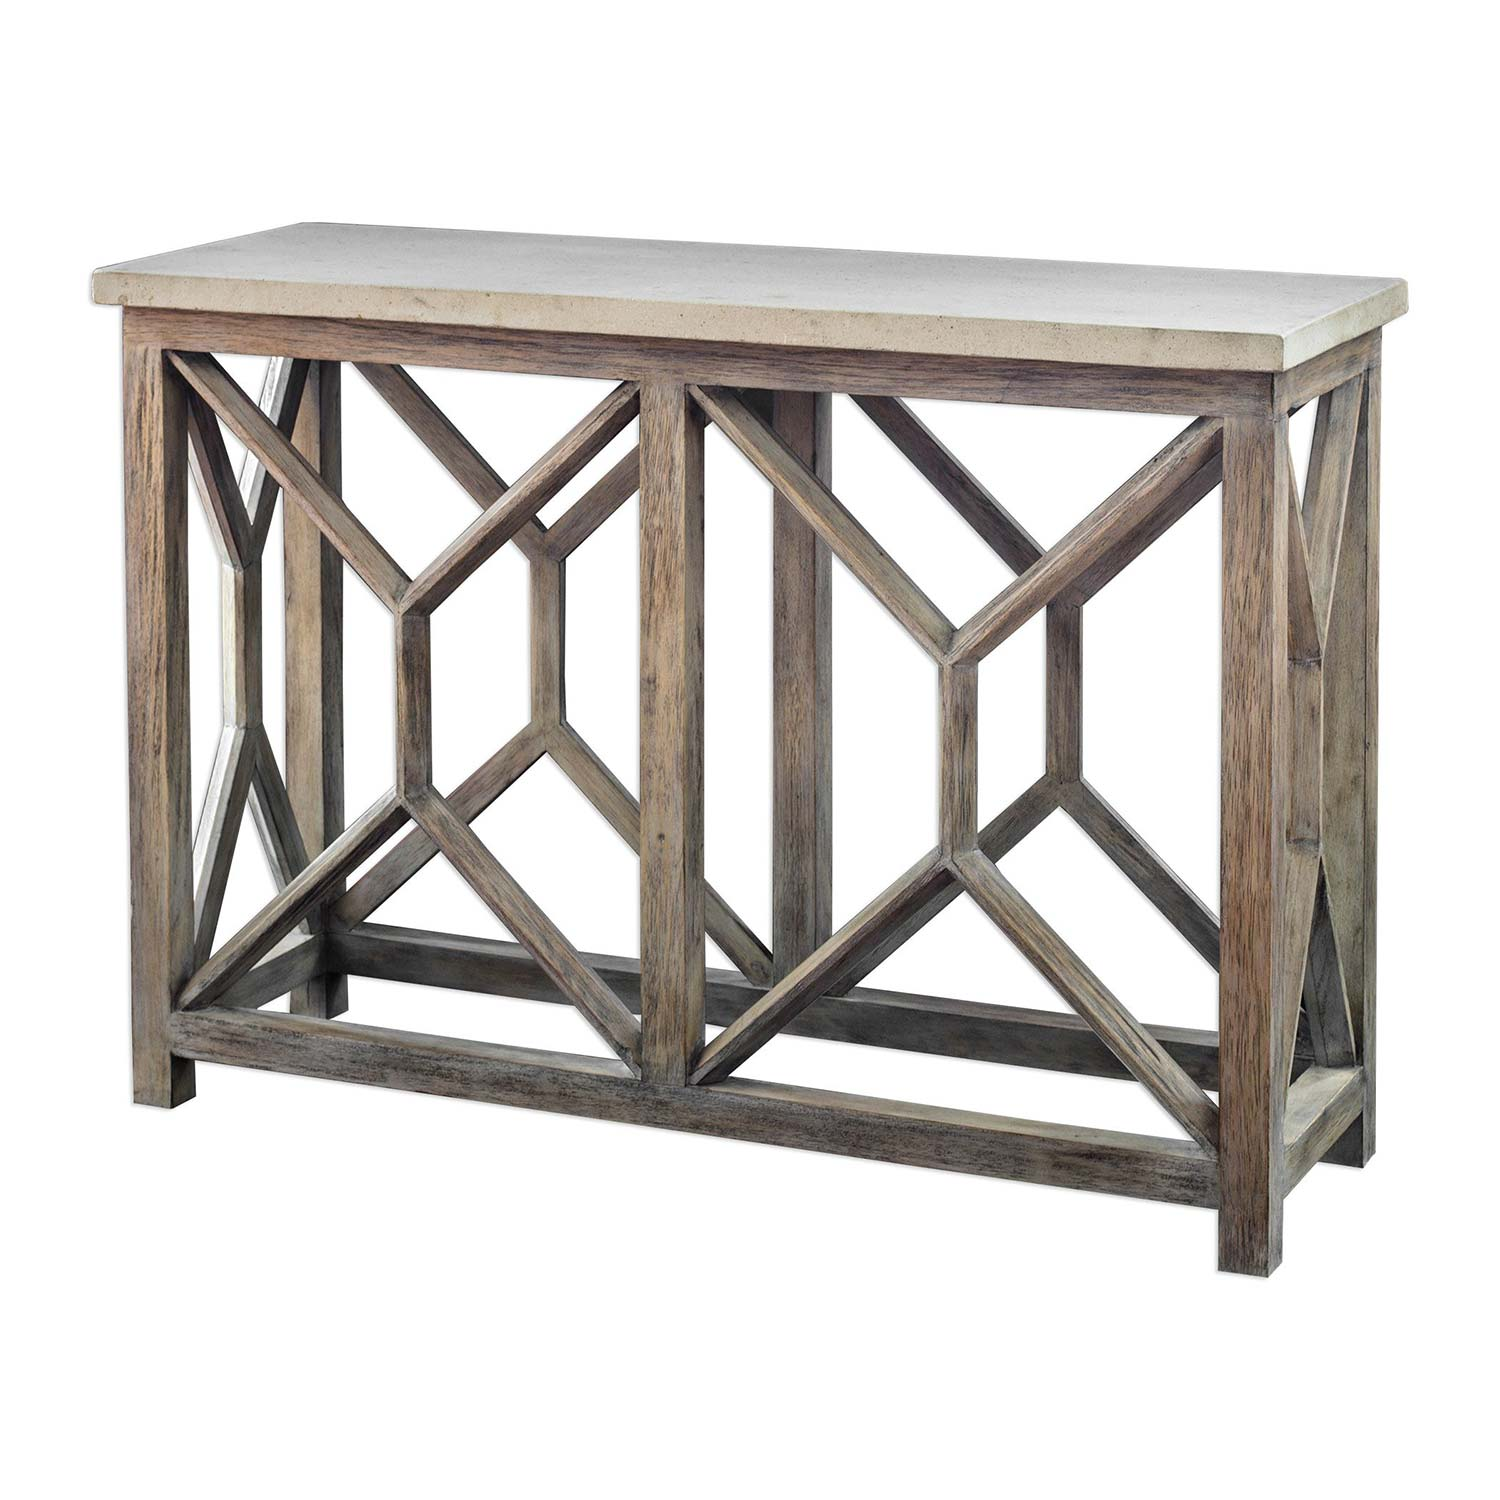 Uttermost Catali Stone Console Table - Ivory